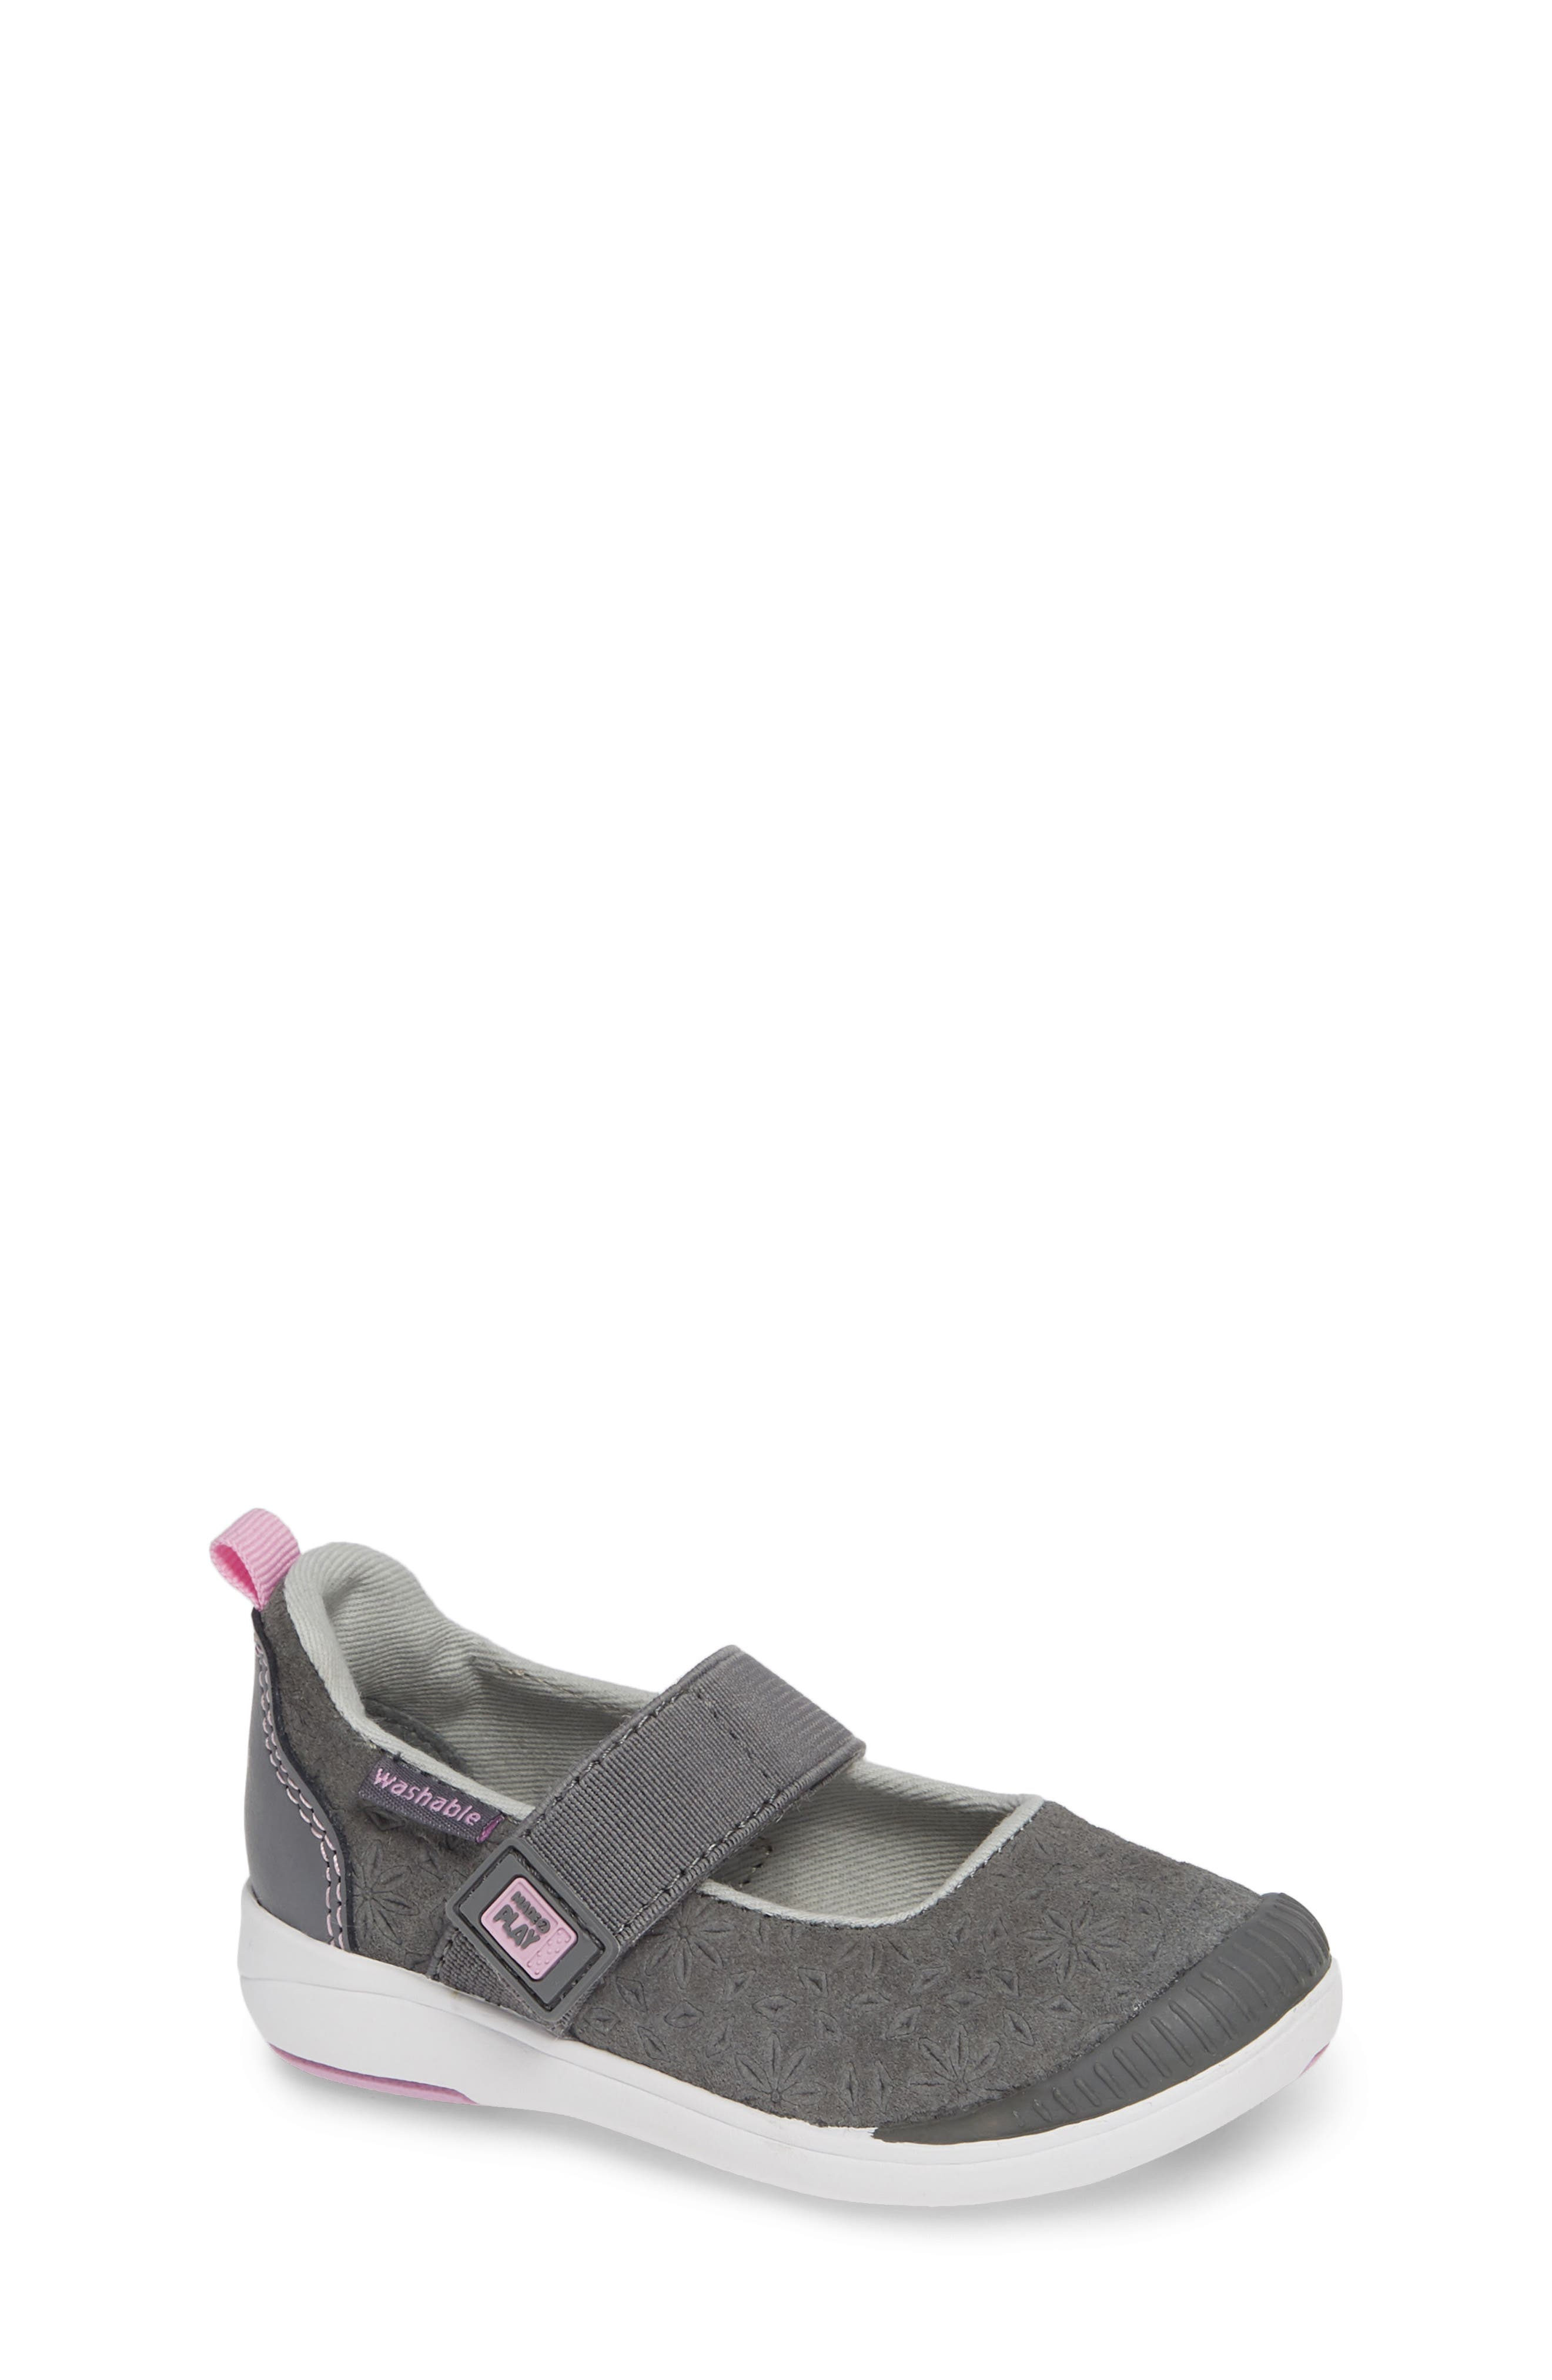 Made2Play<sup>®</sup> Lia Washable Mary Jane Sneaker,                         Main,                         color, GREY